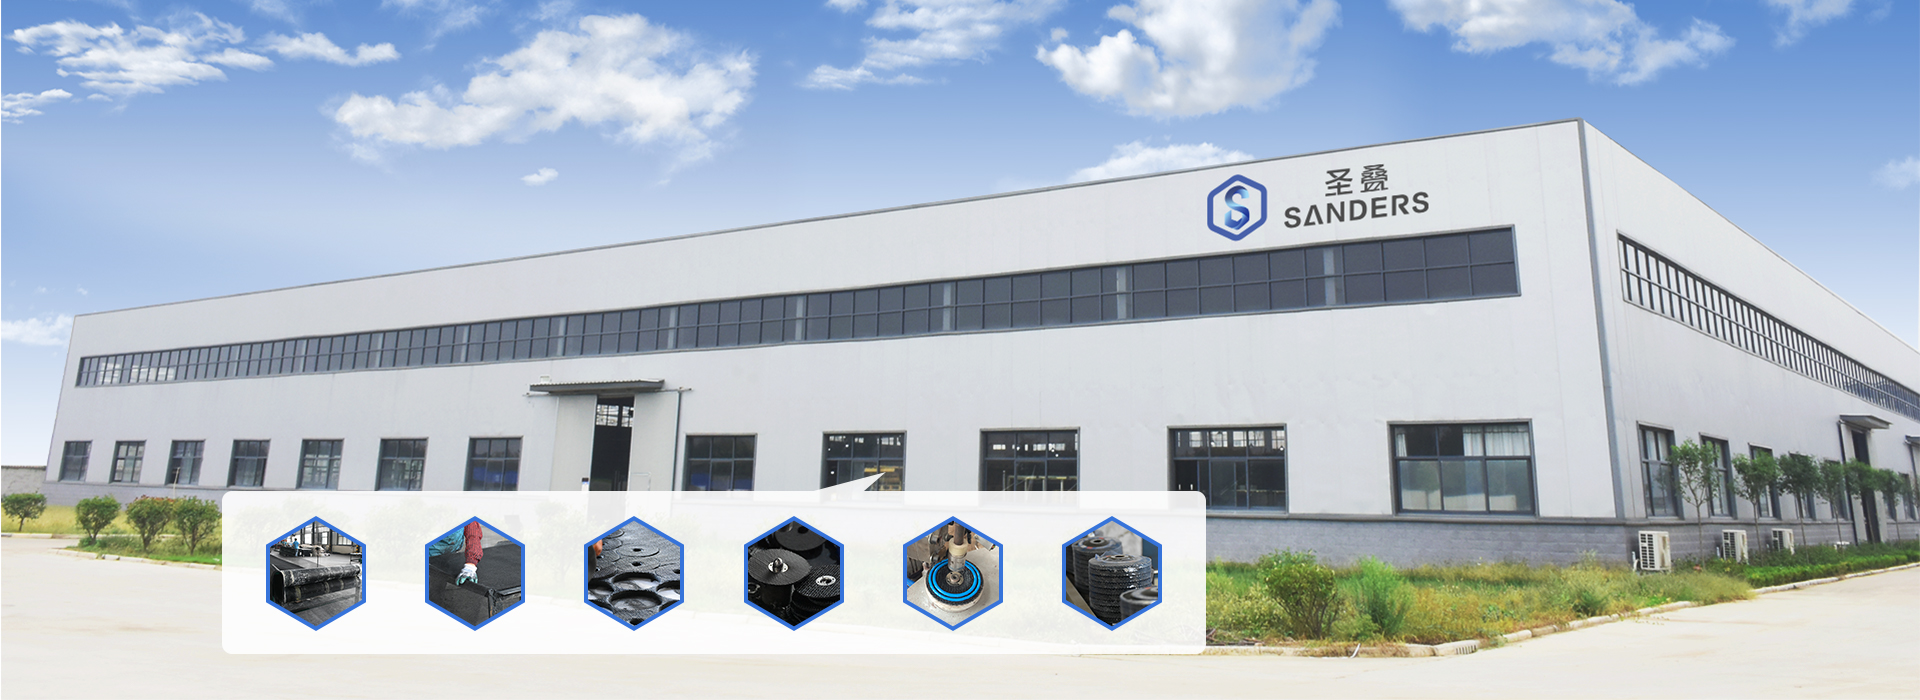 Henan Sanders Abrasives Co., Ltd